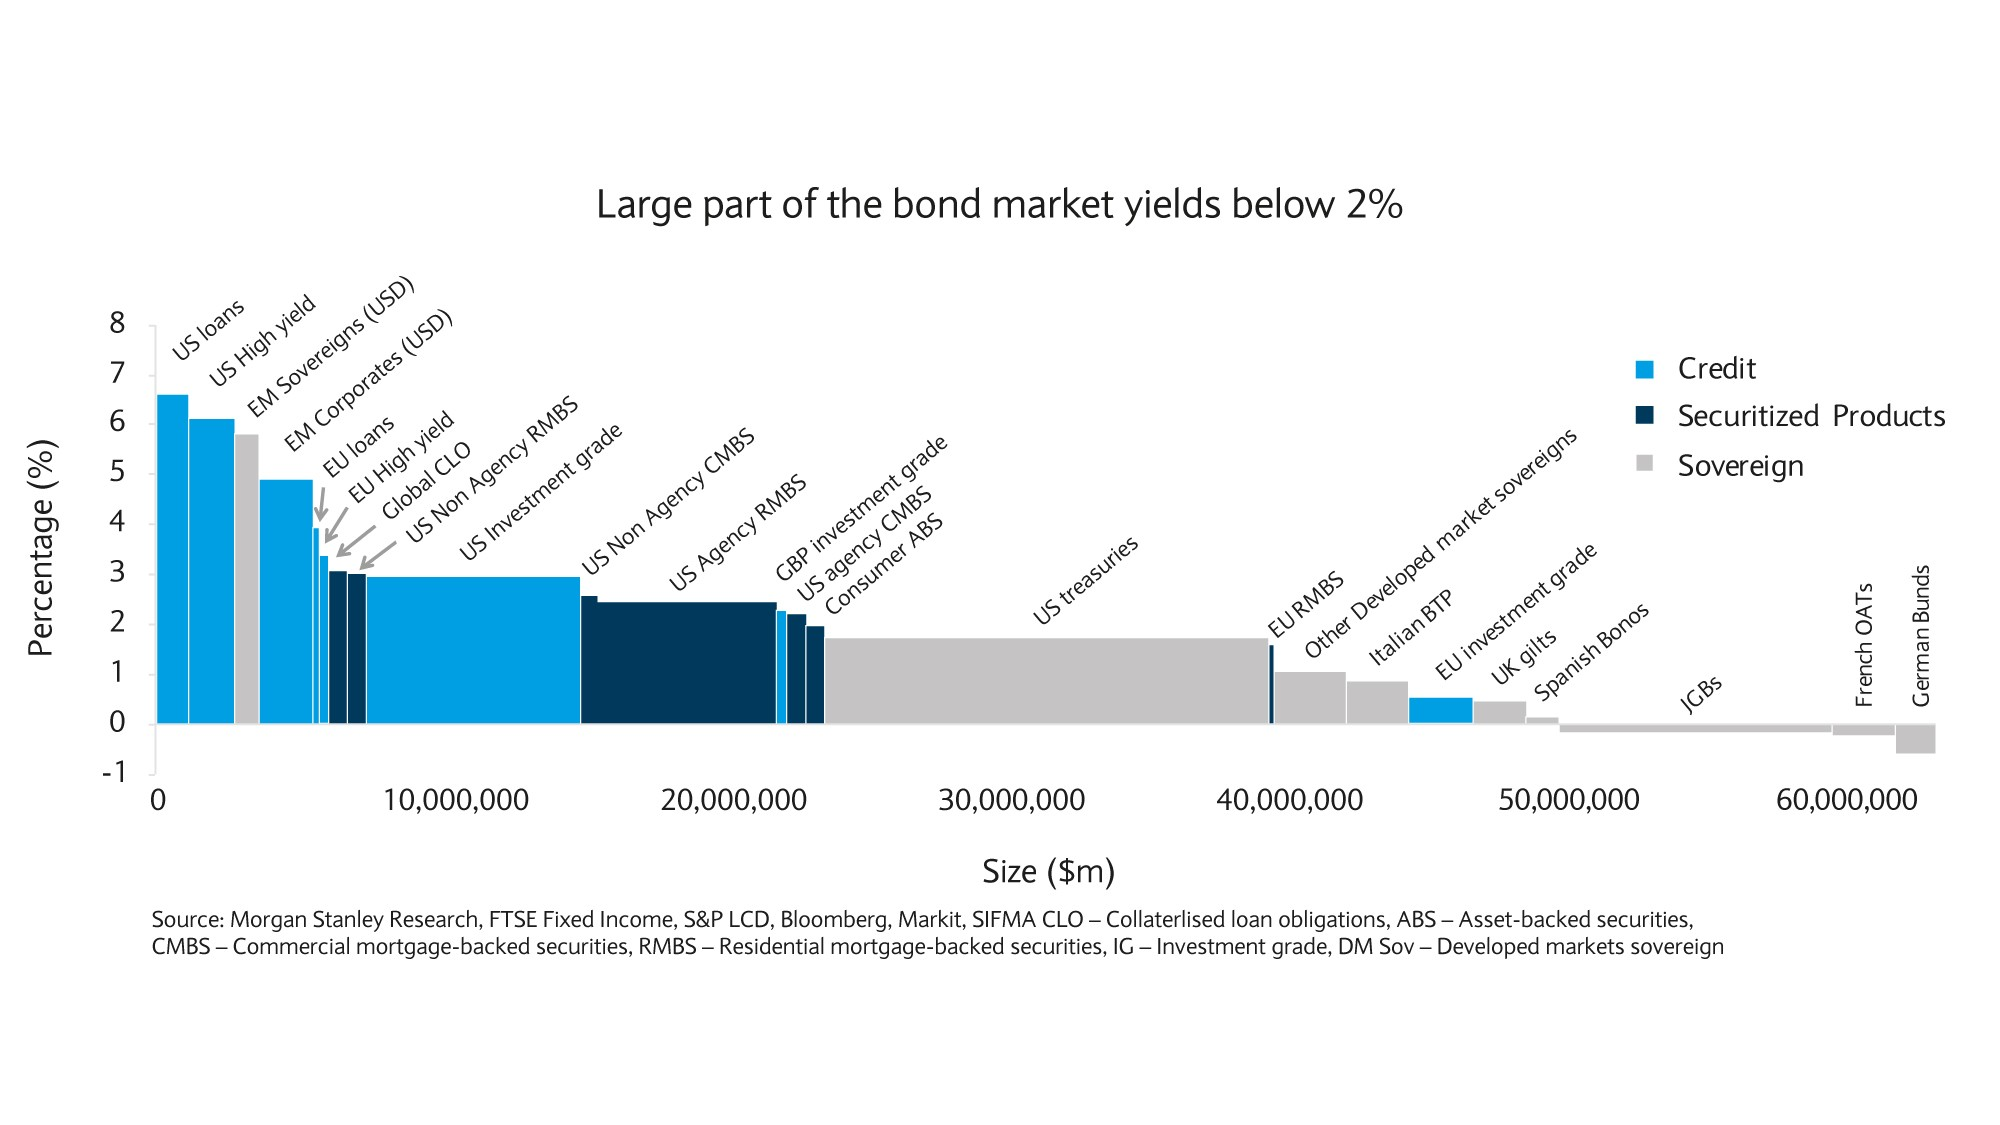 Large part of the bond market yields below 2%